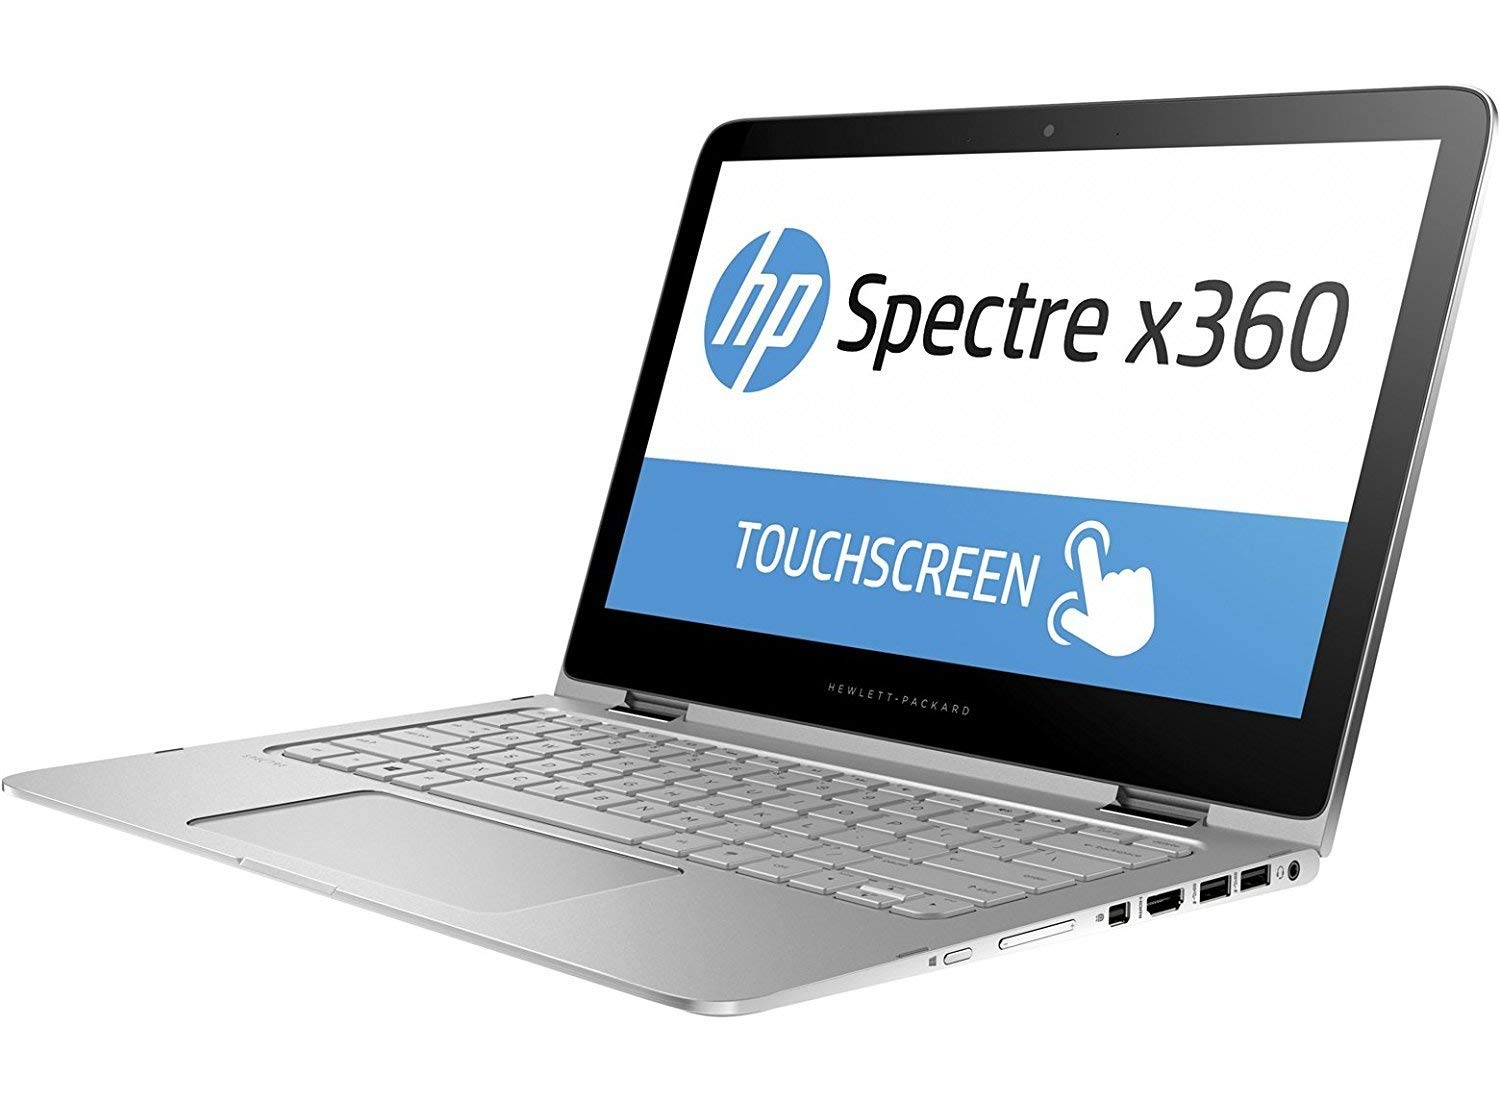 Amazon.com: HP - Spectre x360 (Certified Refurbished ...